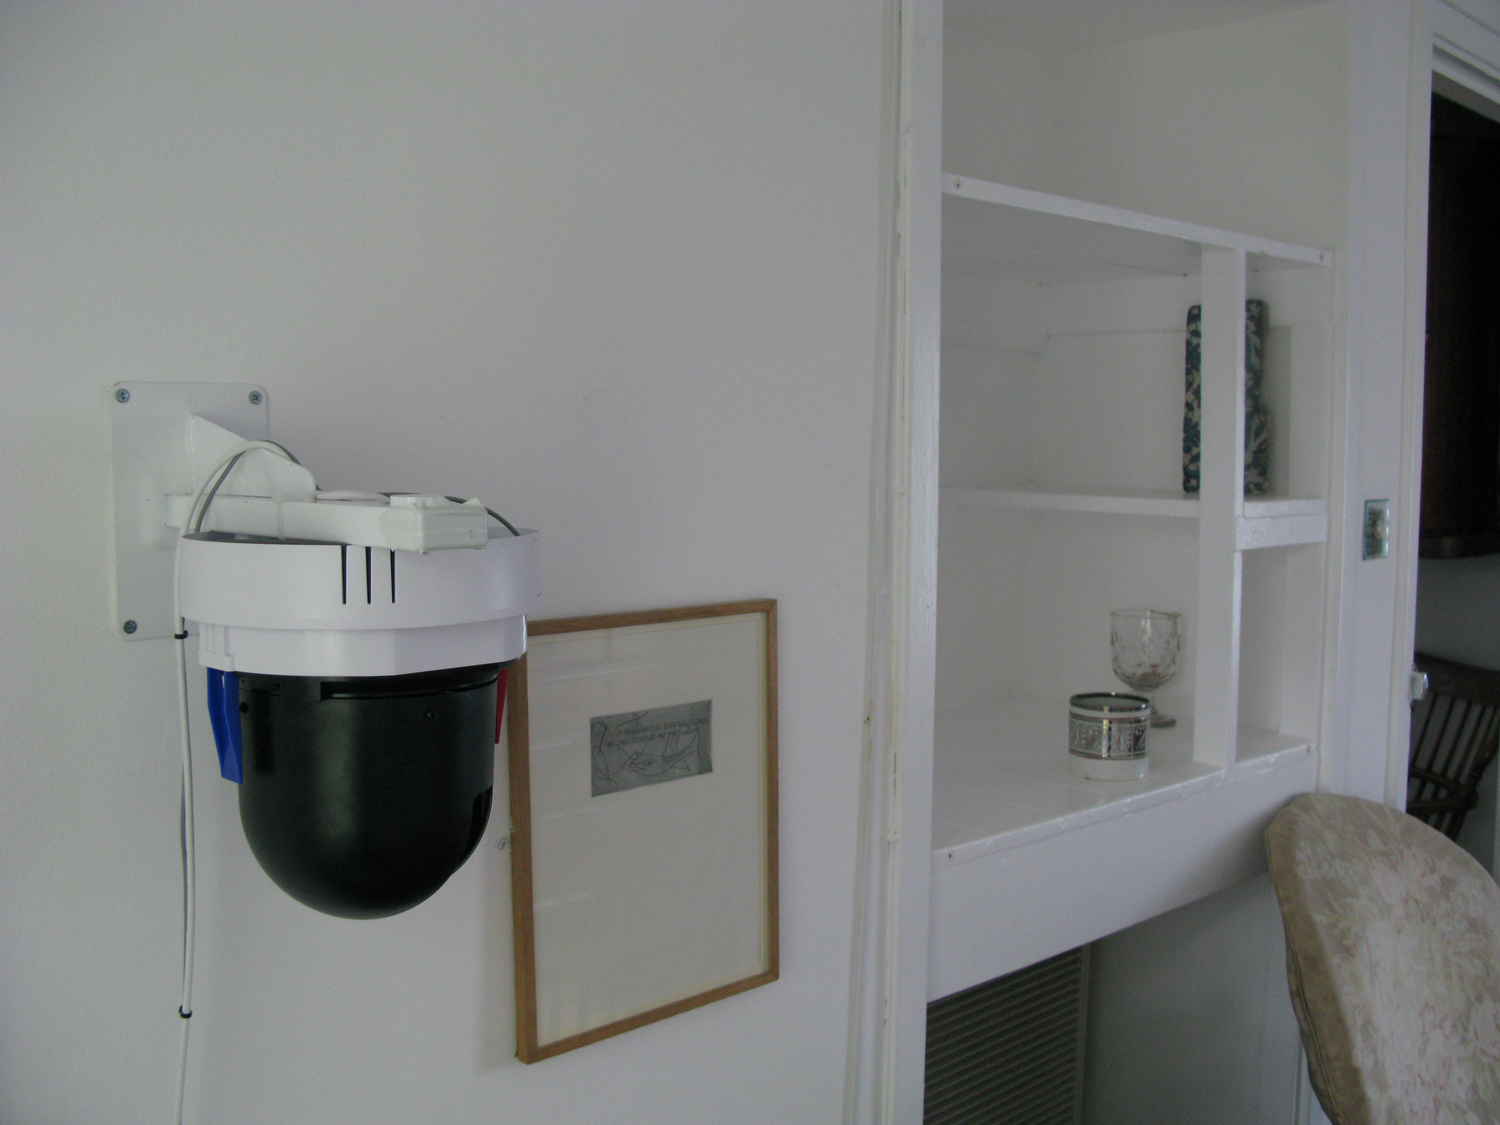 Helen's Room - Kettles yard, 2009, live online 24/7 - surveillance camera in situ,not visible to viewer